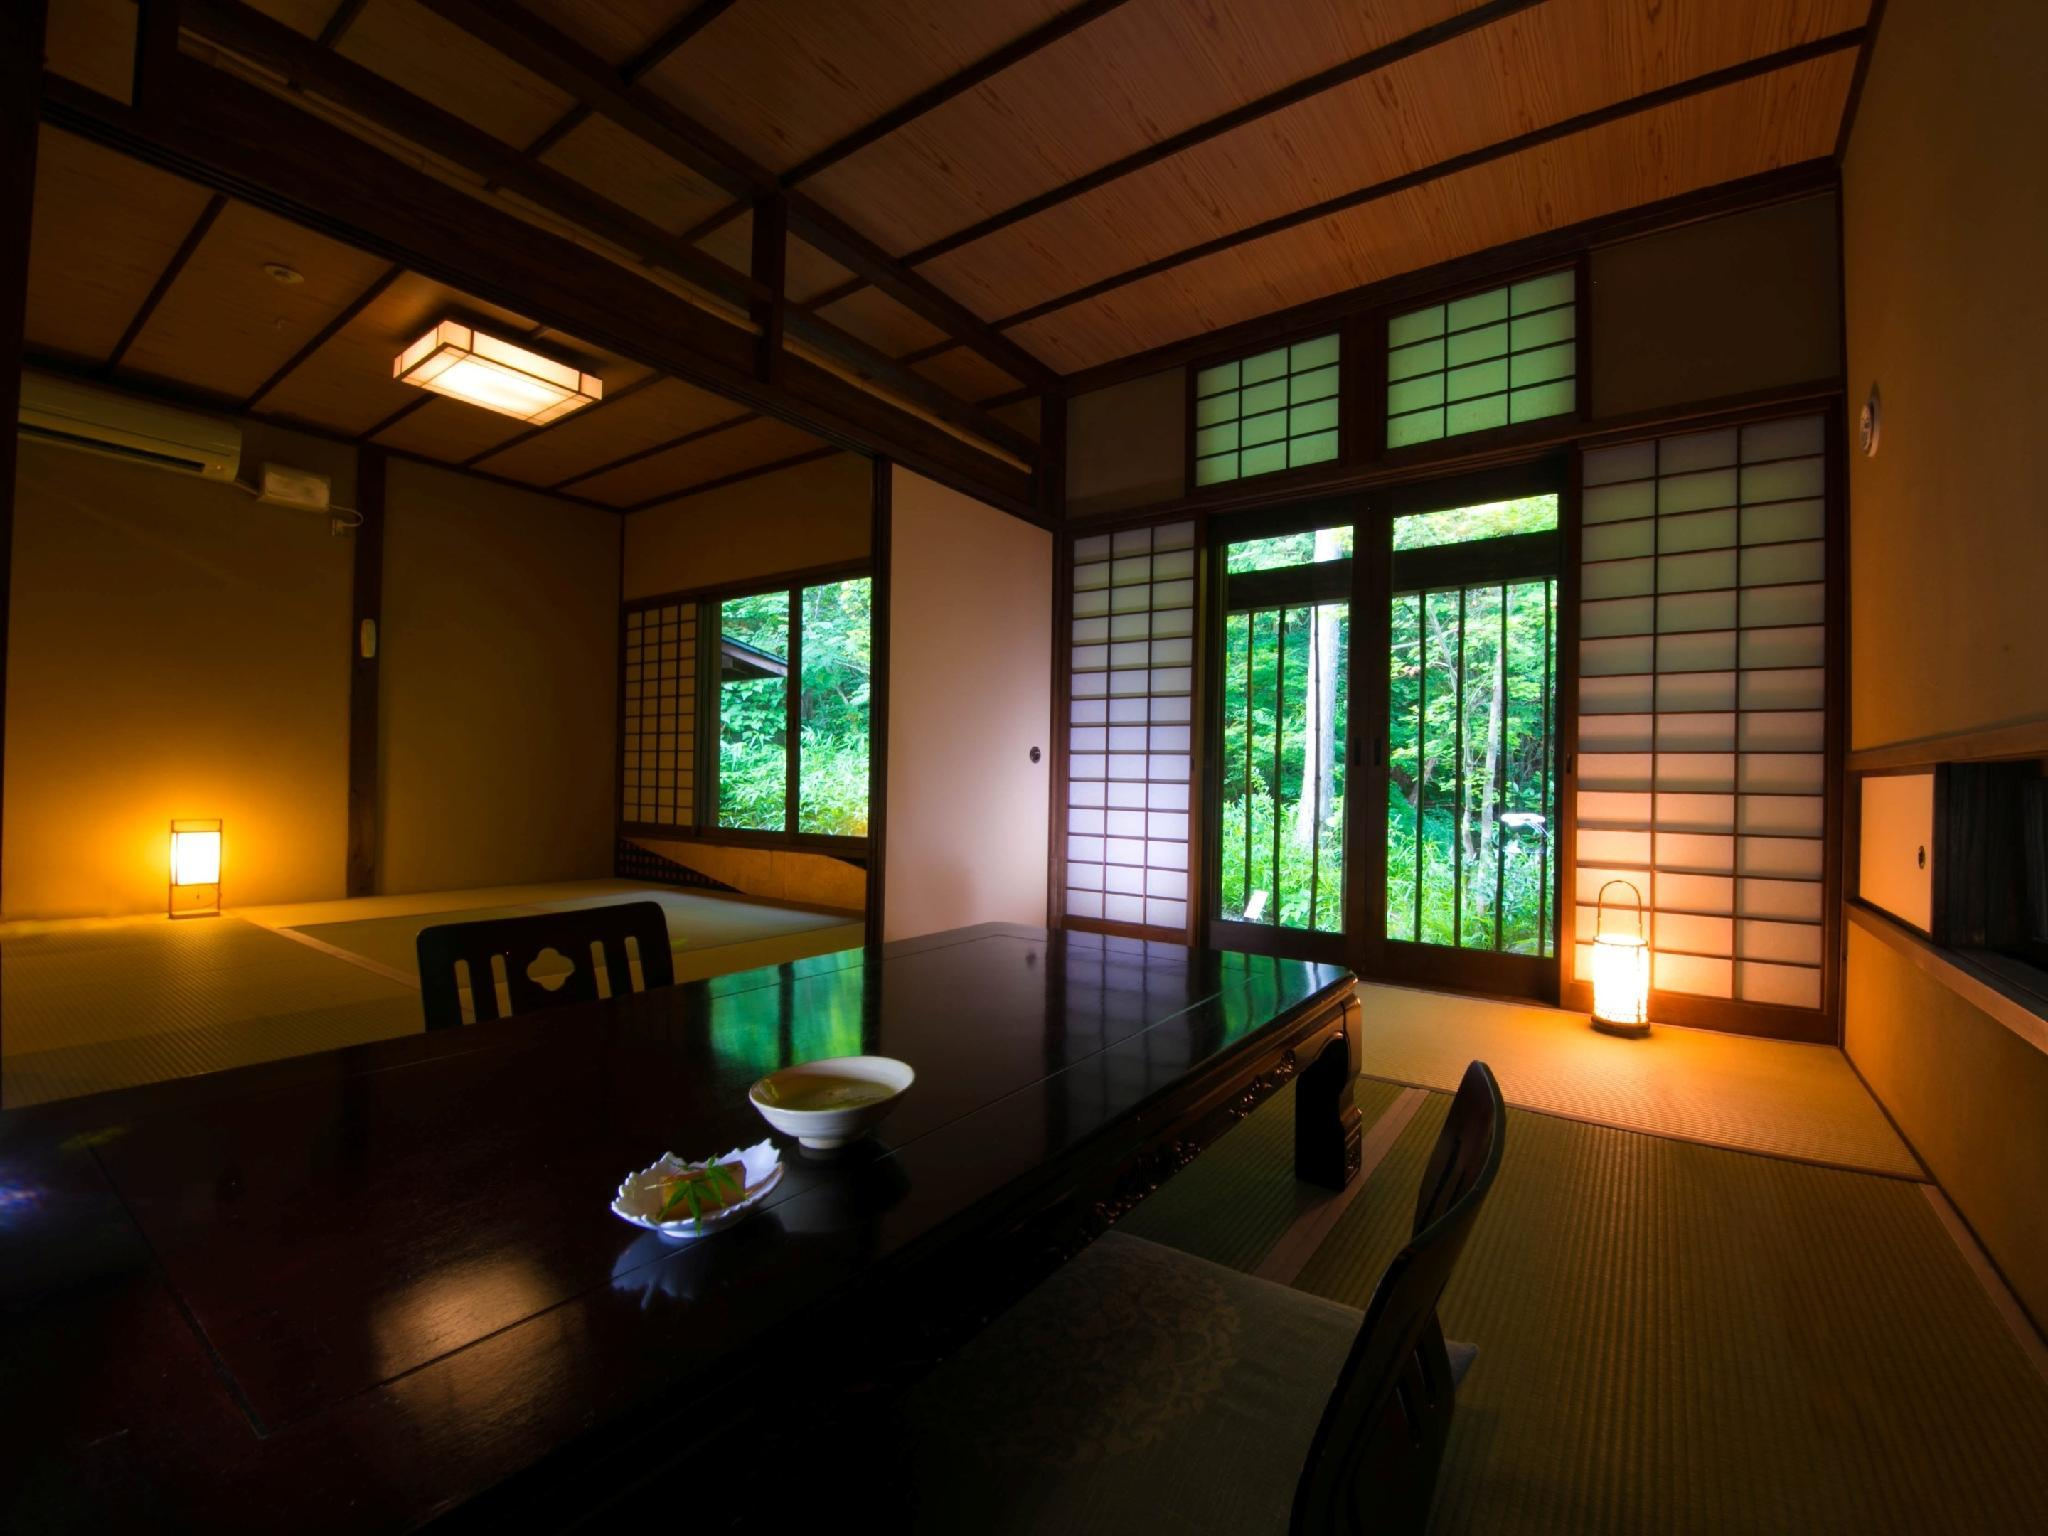 别馆 独立房(特别房A+露天风吕) (Detached Special Room with Open-air Bath (Type A, Annex))